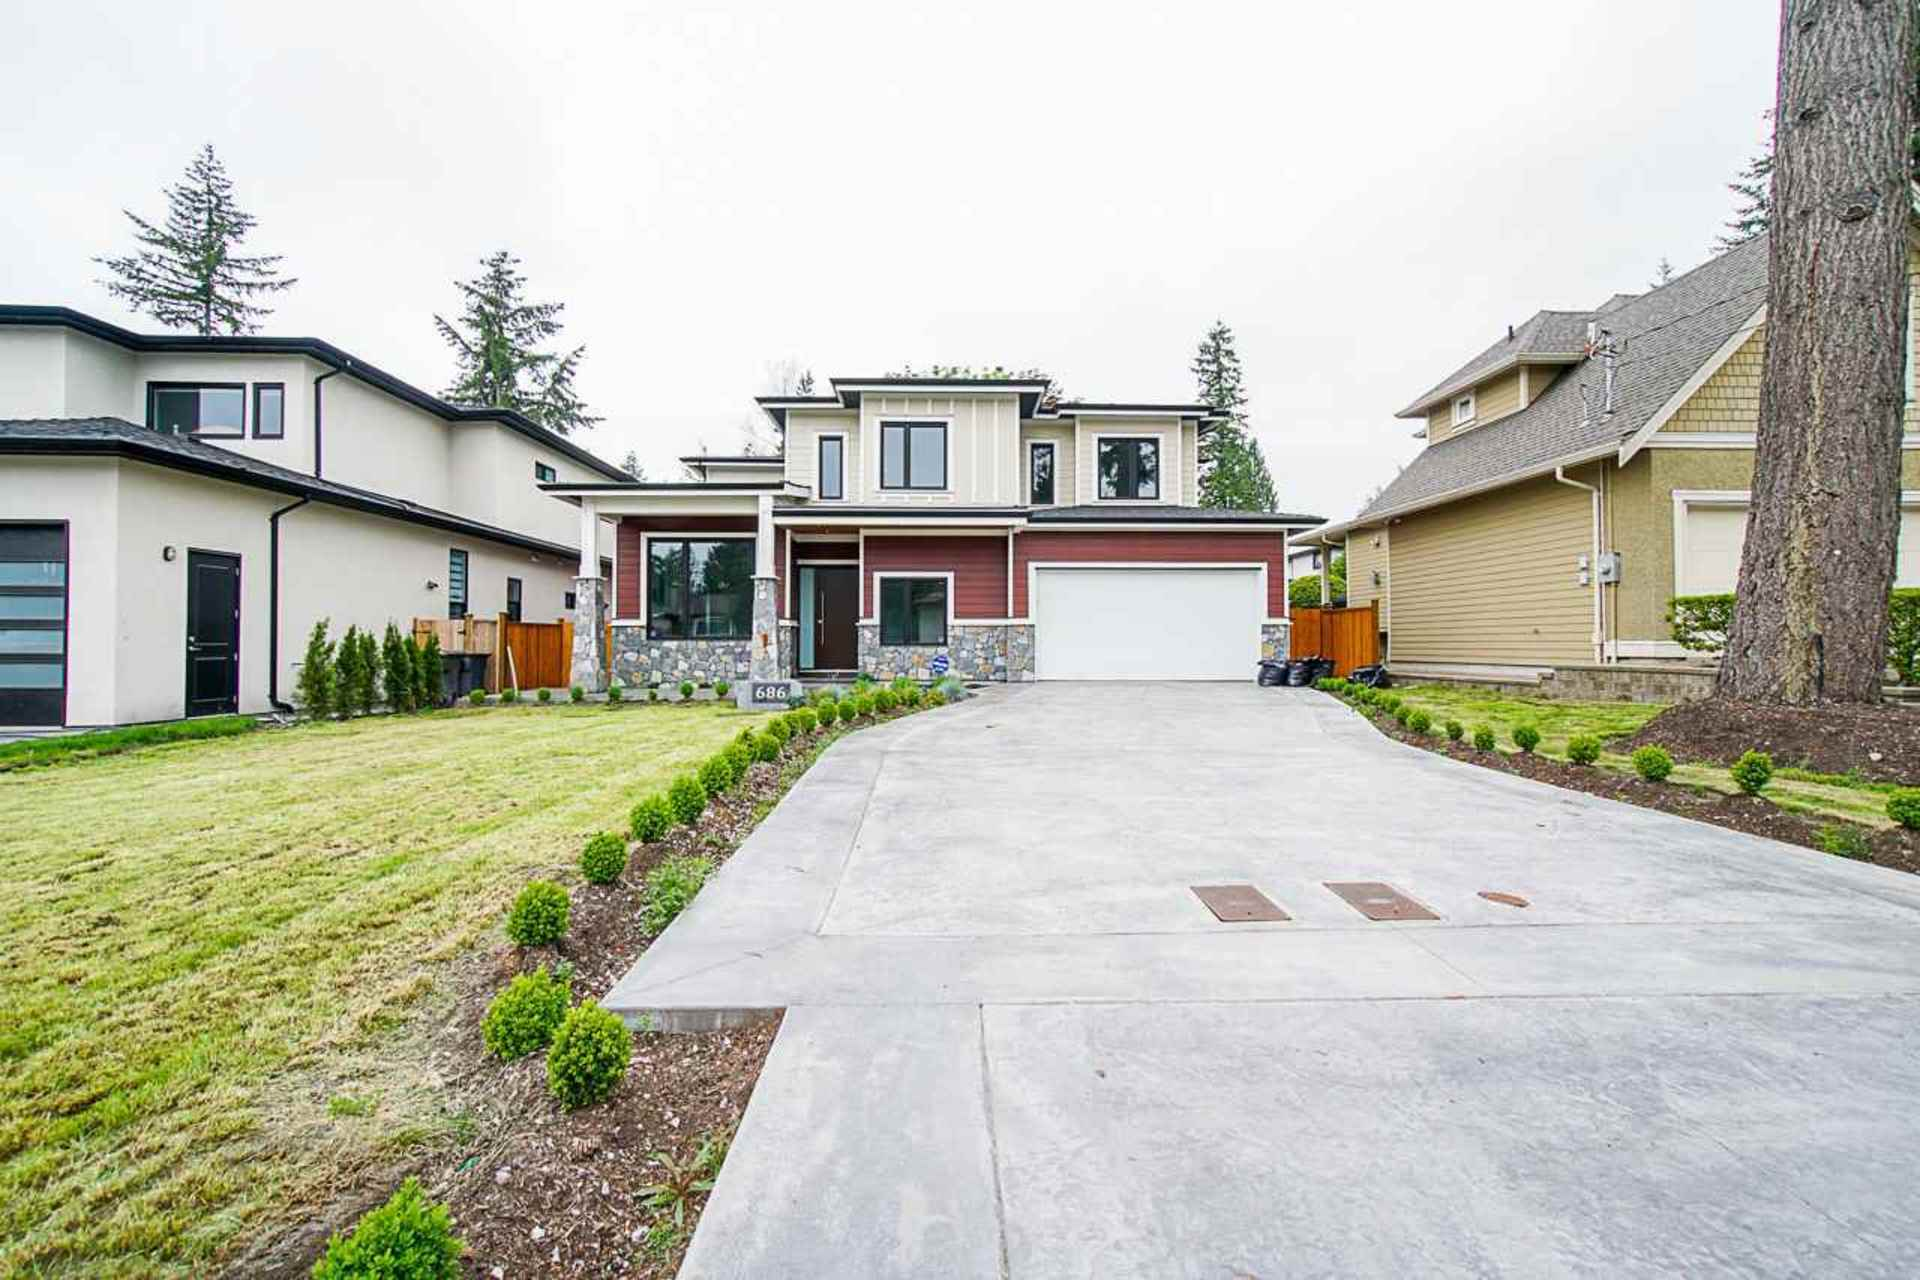 686-porter-street-central-coquitlam-coquitlam-02 at 686 Porter Street, Central Coquitlam, Coquitlam